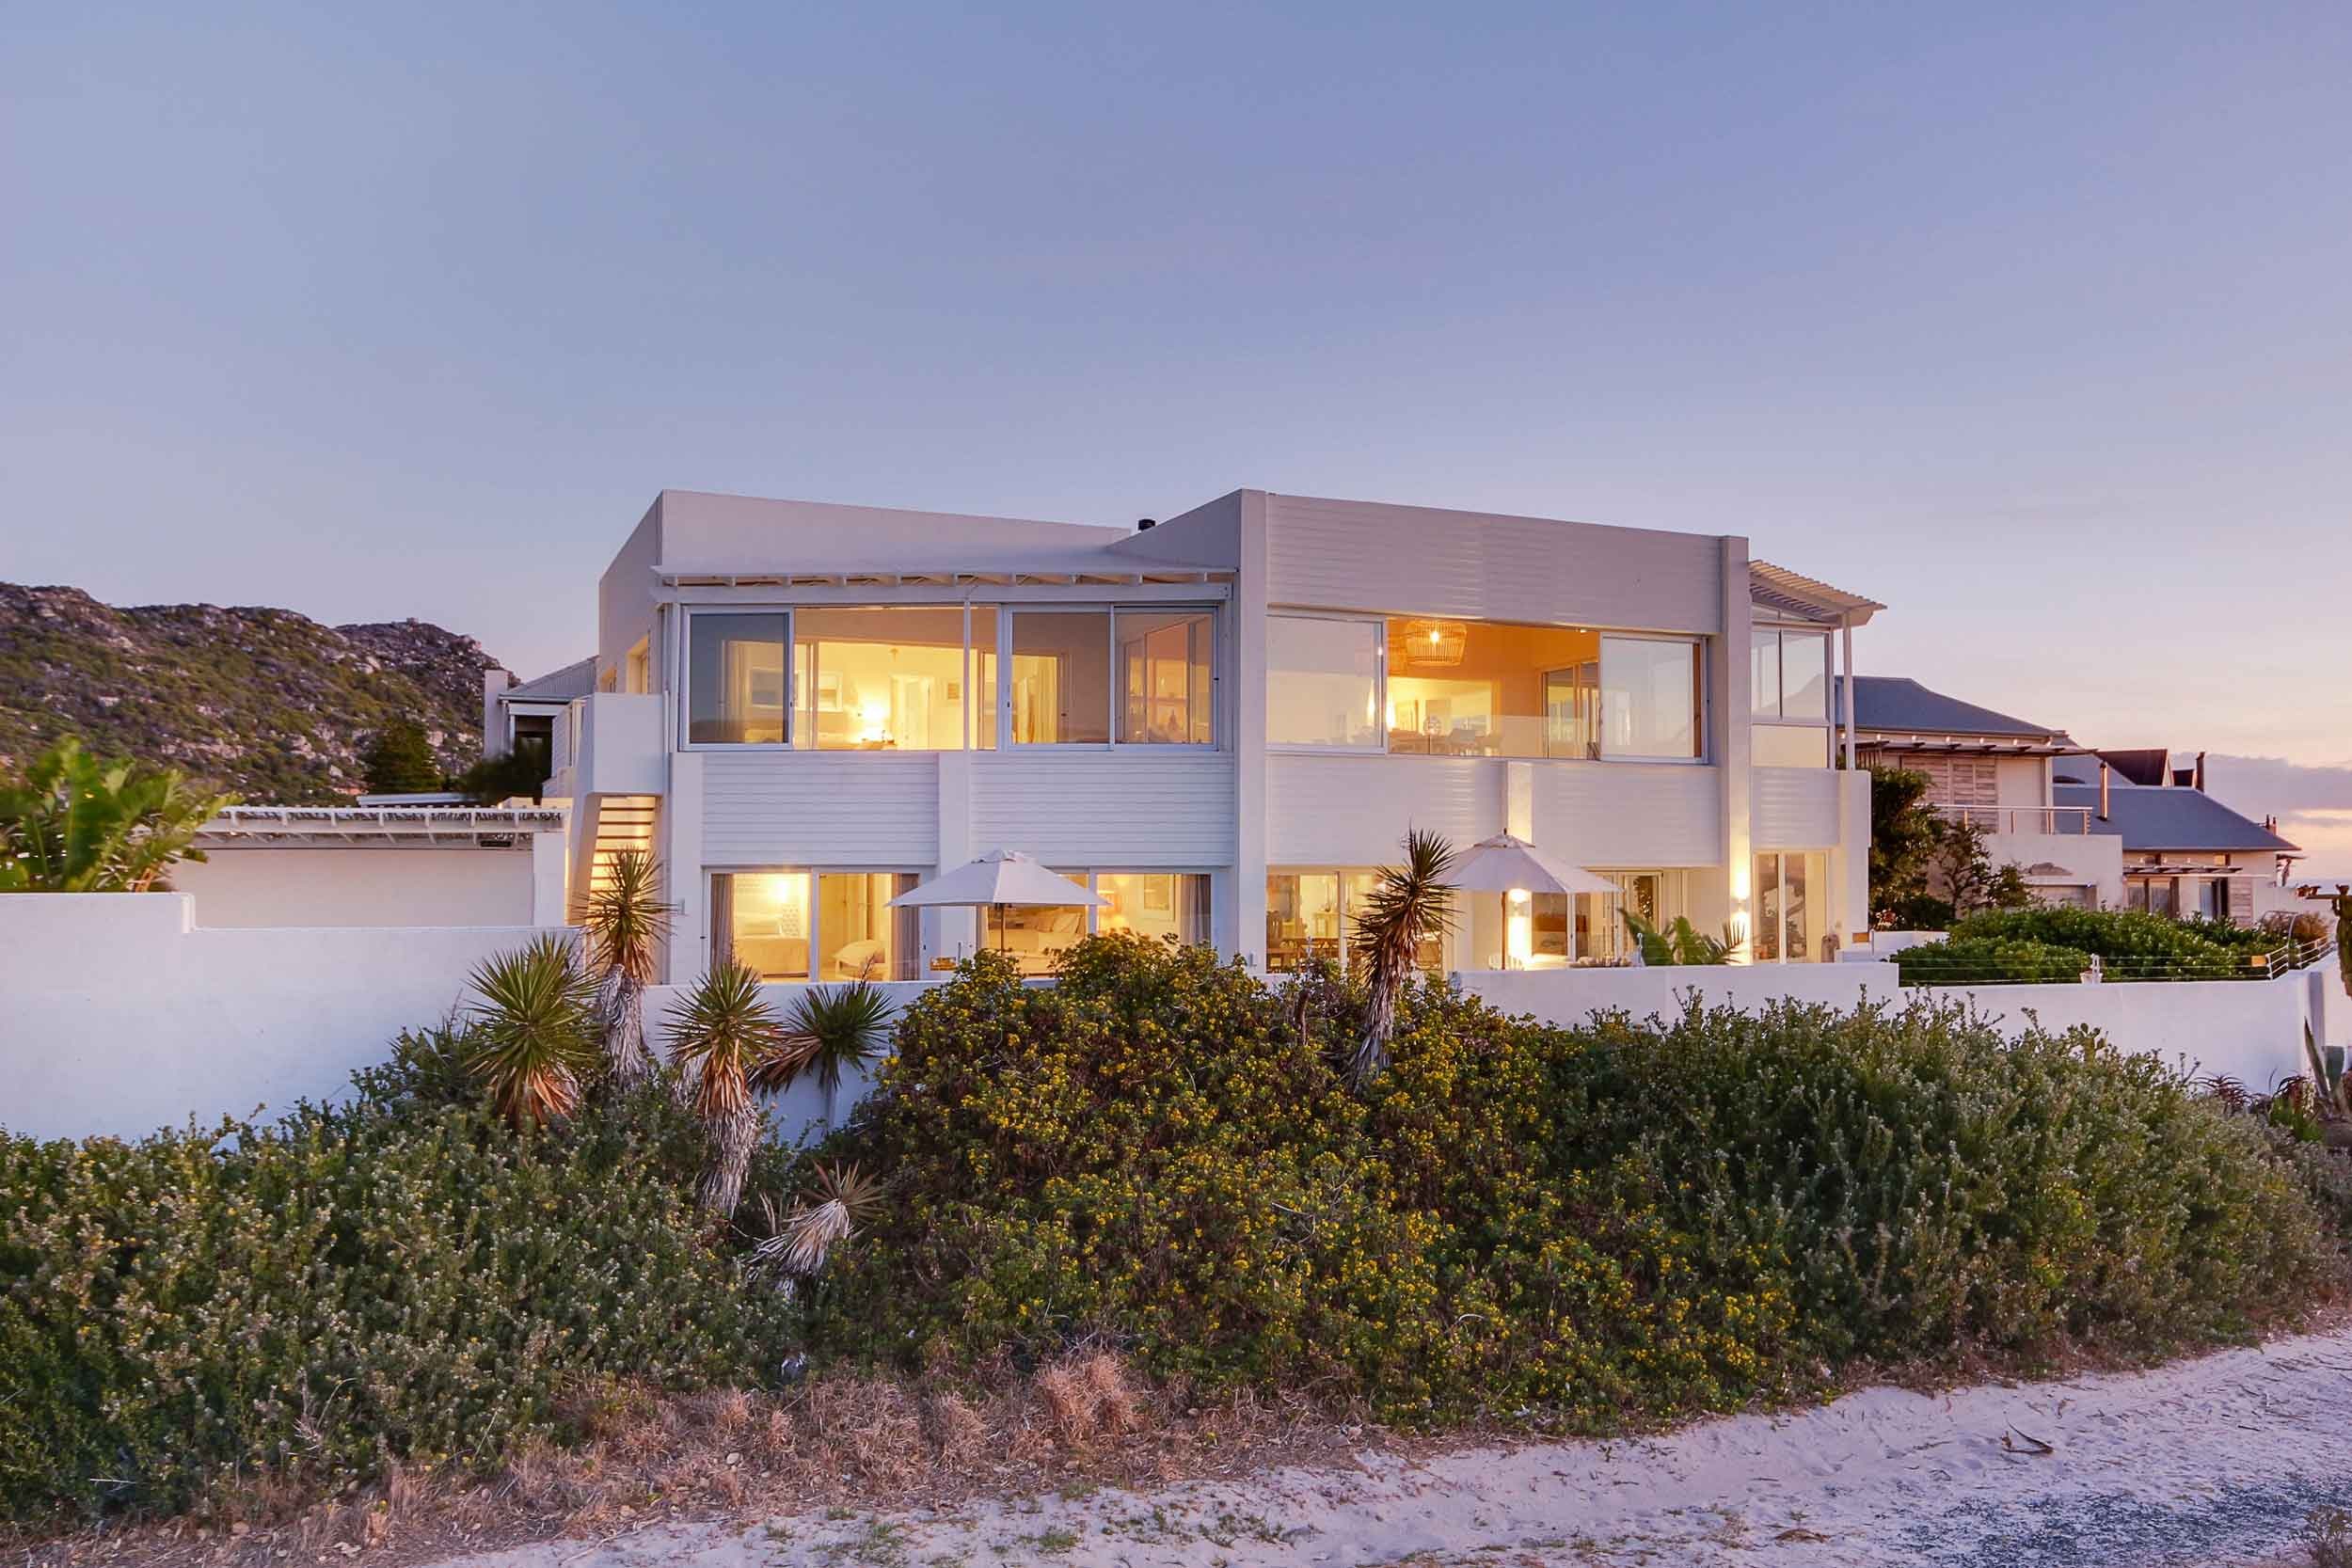 So many luxury amenities in a home situated so close to the water: a true beach rarity.